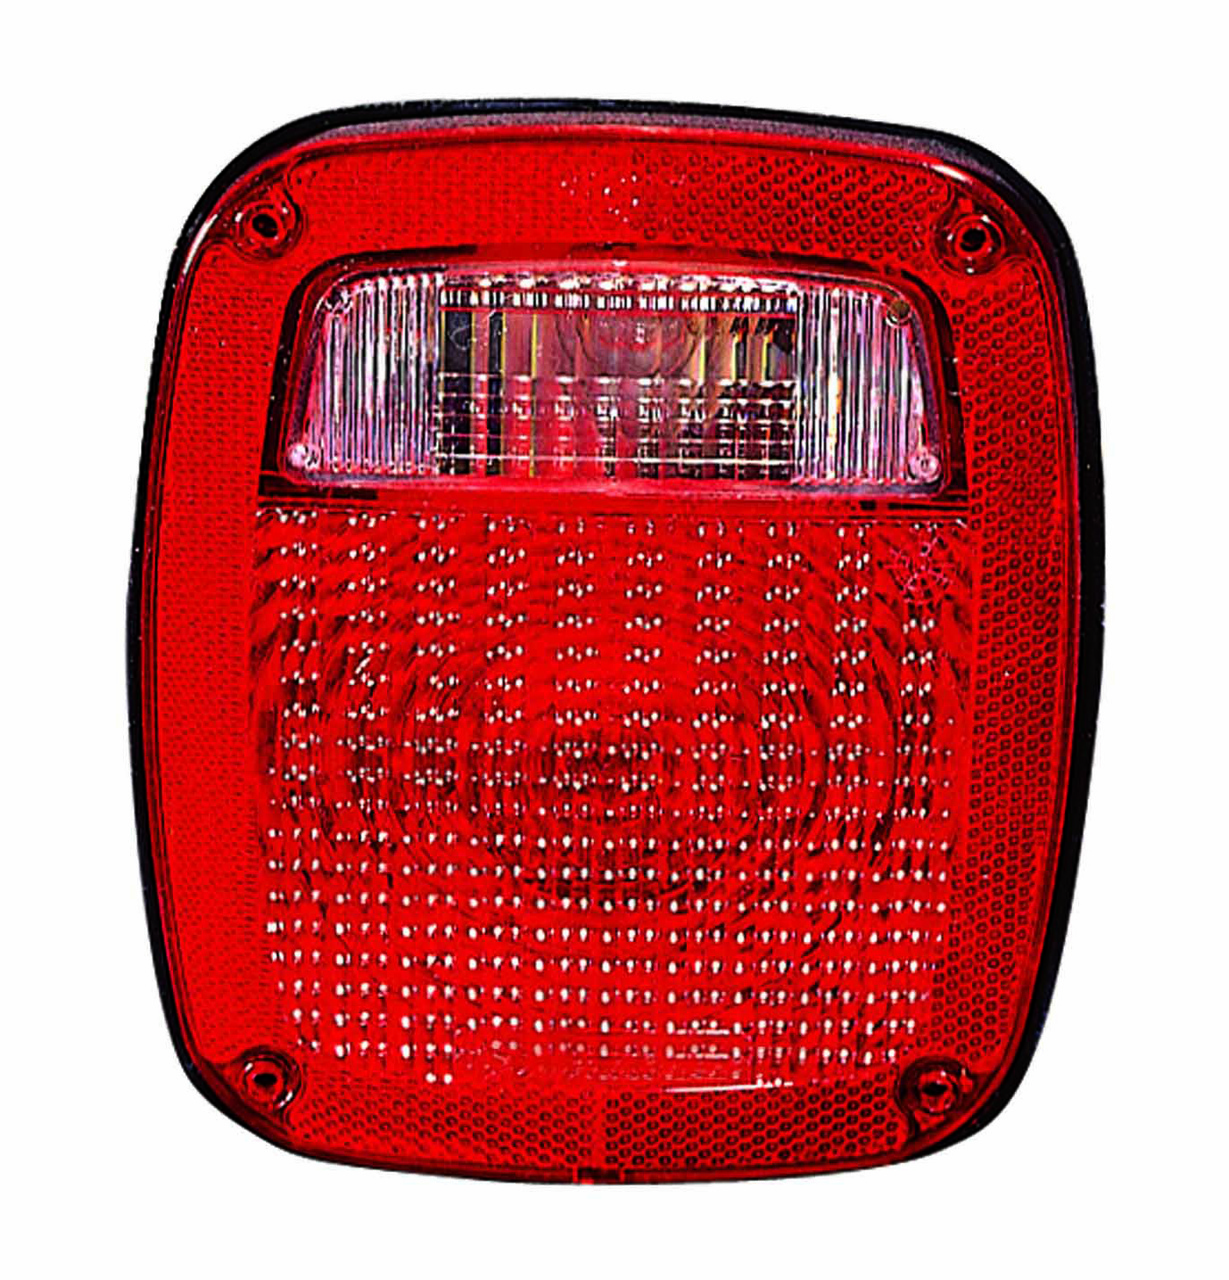 Jeep Wrangler 2000 2001 2002 2003 2004 2005 2006 right passenger tail light